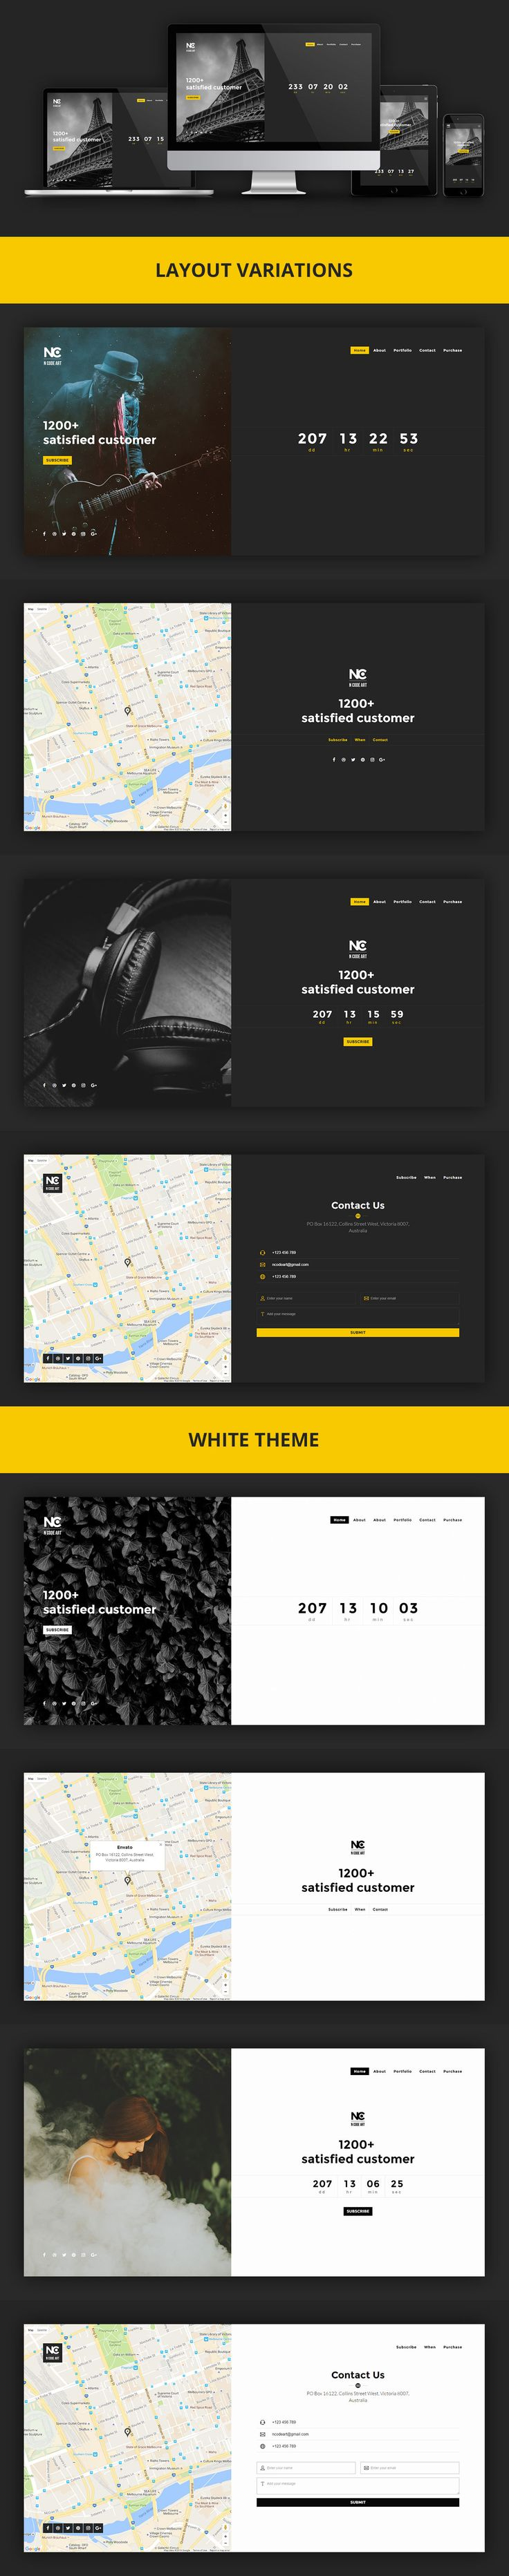 405 best One Page Website Templates images on Pinterest | Lightbox ...